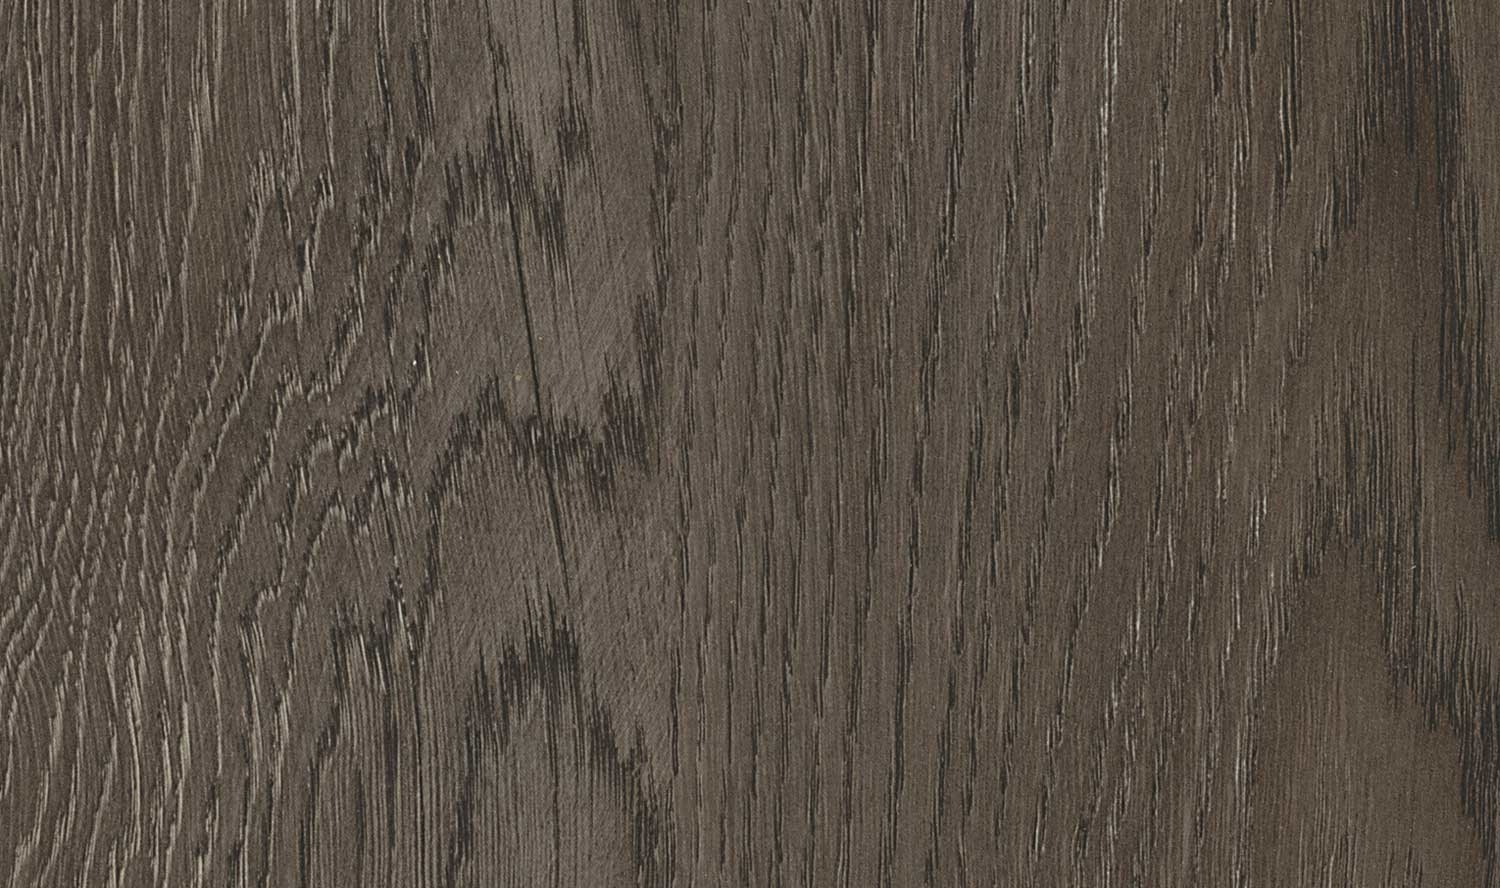 14807 PUunette Oak Laminate